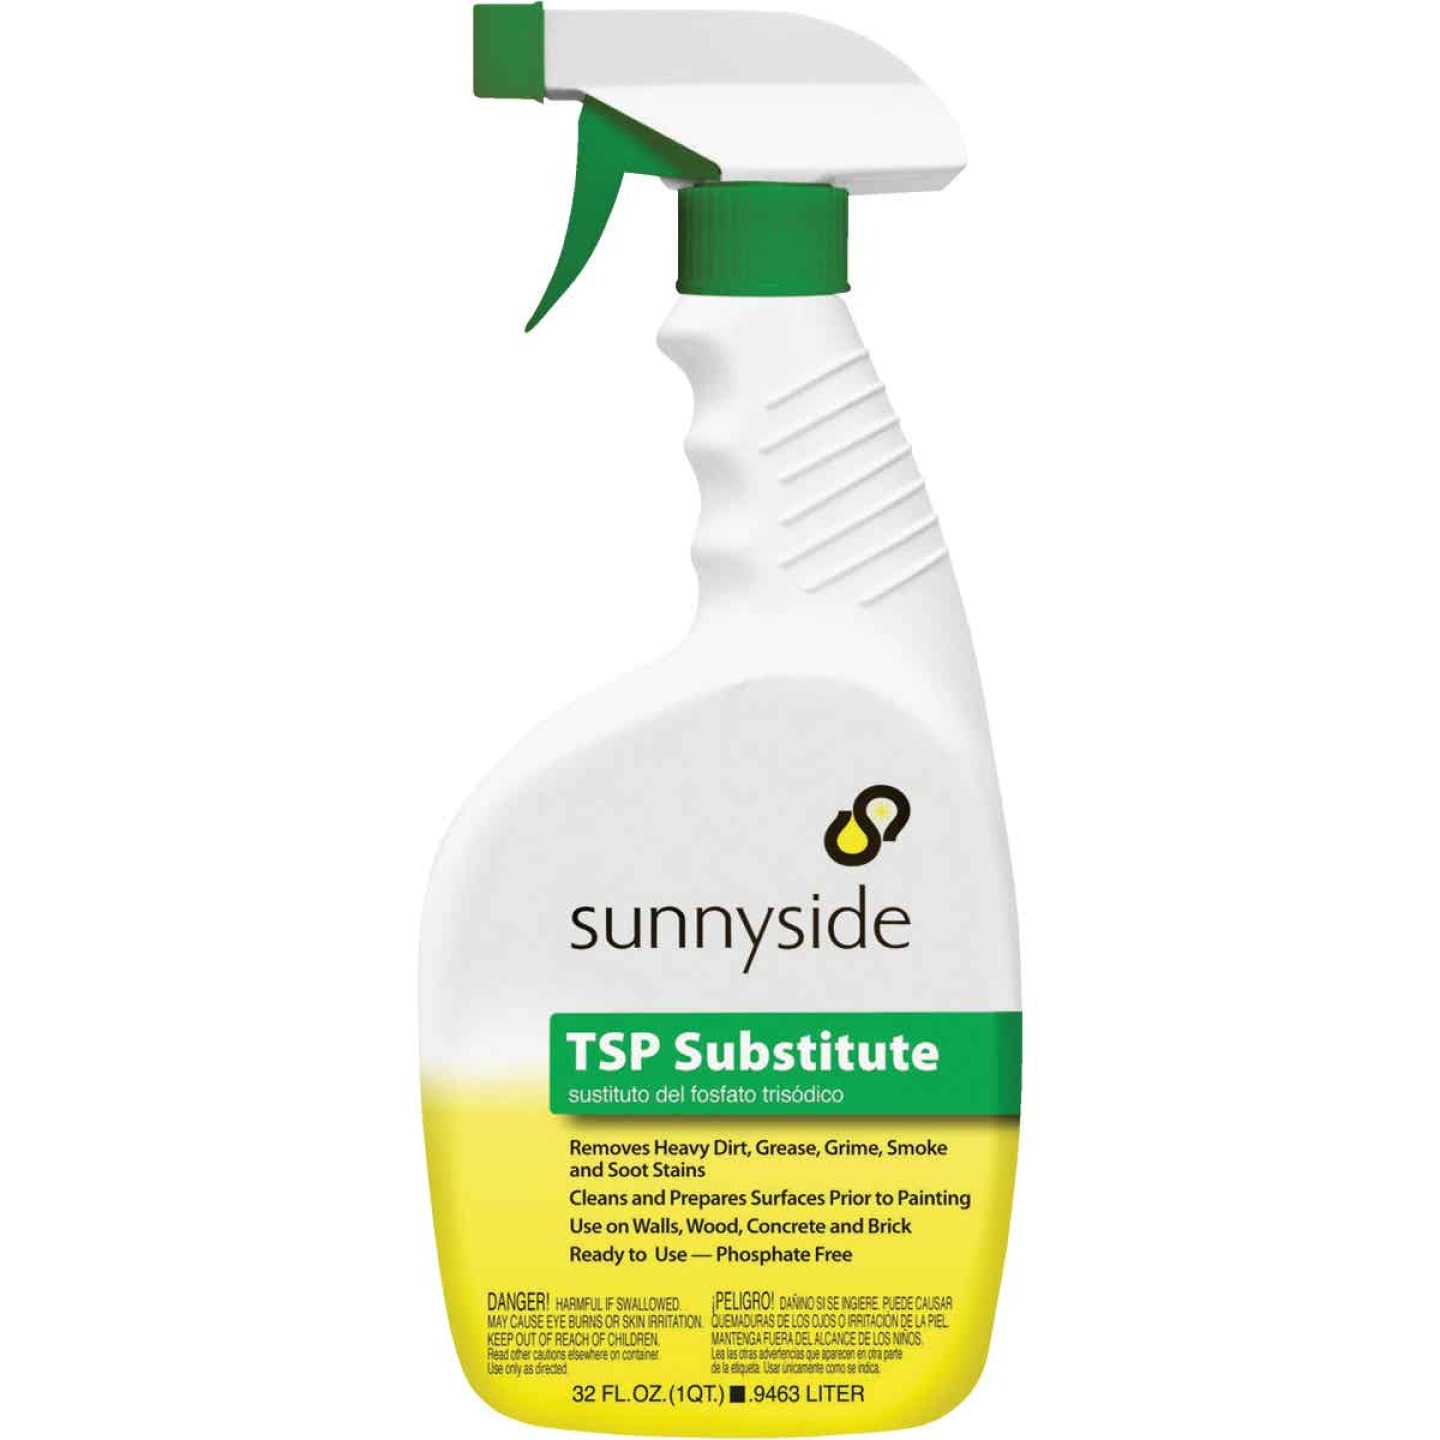 Sunnyside 1 Qt. Ready To Use Trigger Spray TSP Substitute Cleaner Image 1